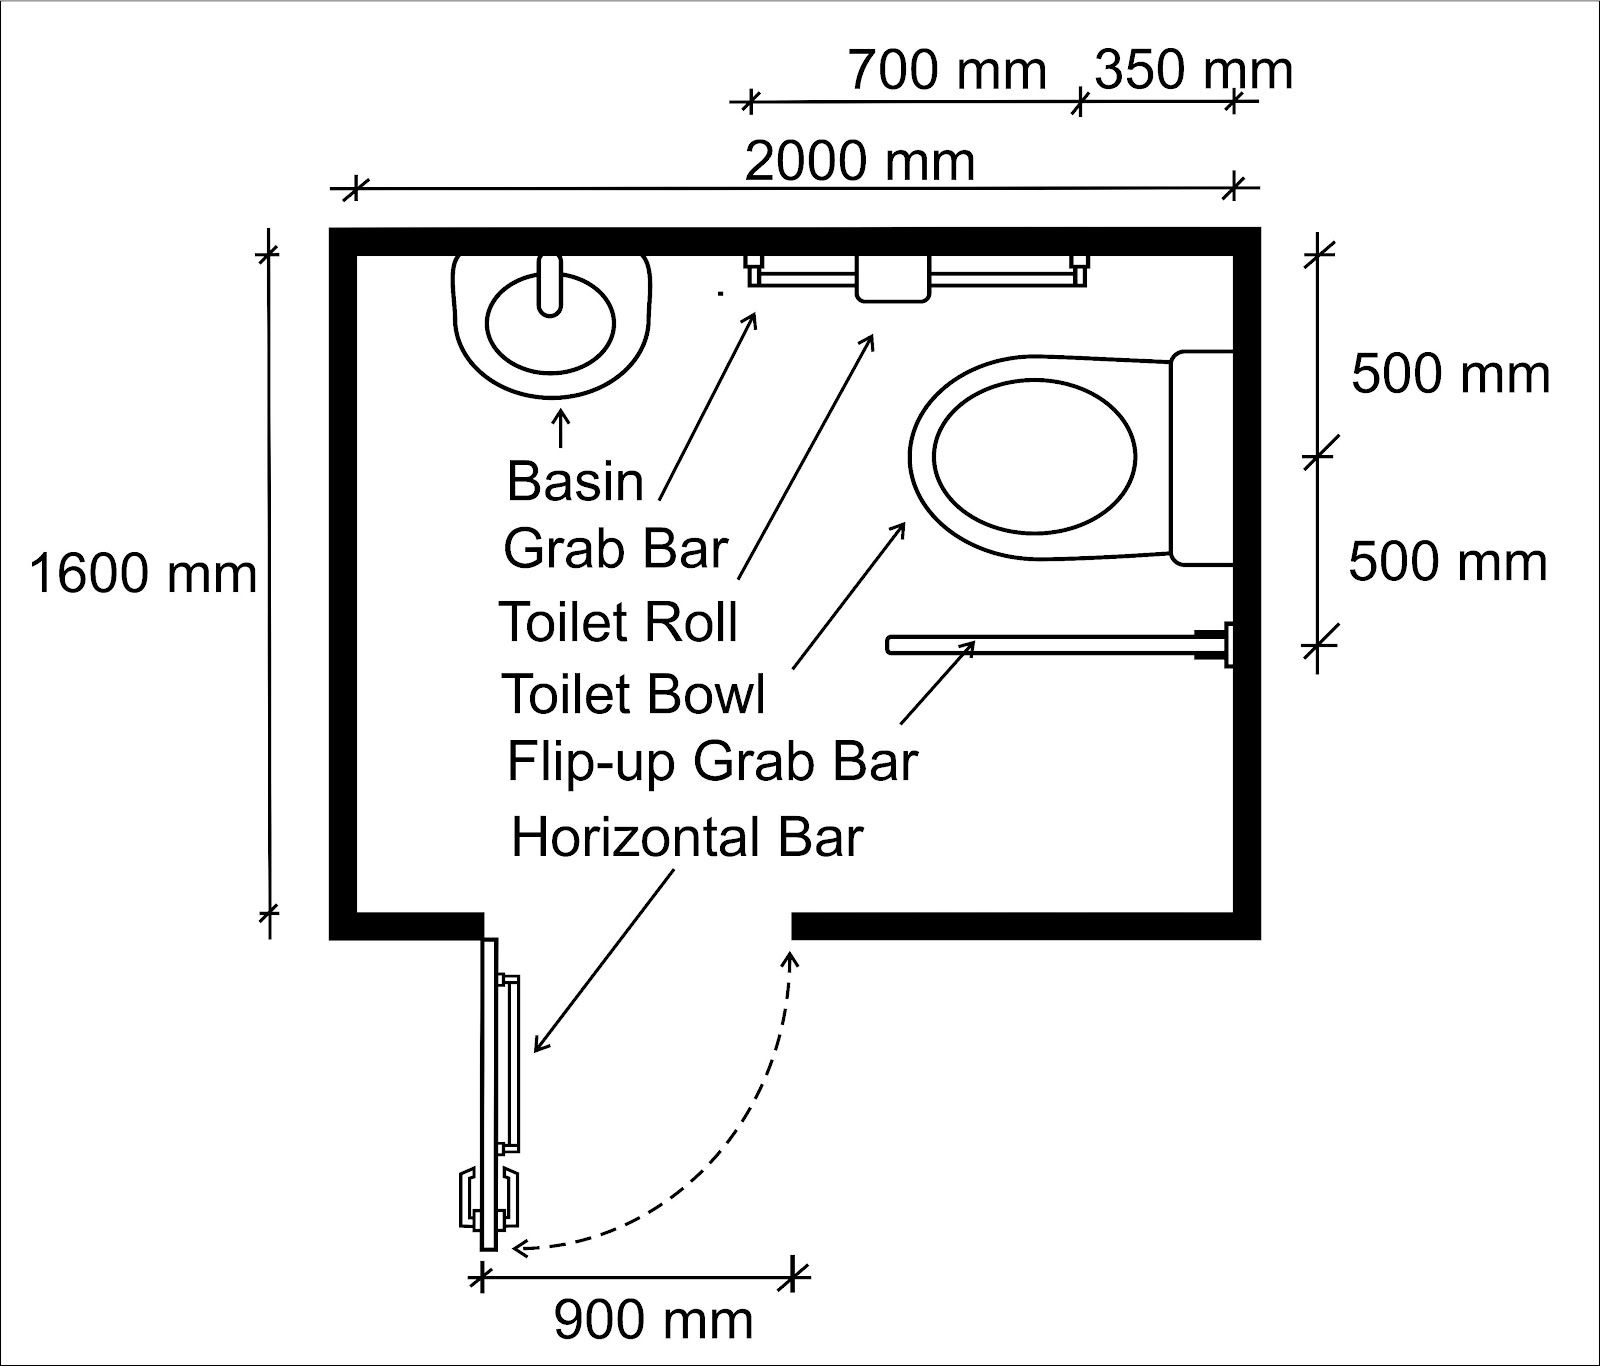 Wc Plan Measurements For Toilets For Disabled People Hospitality